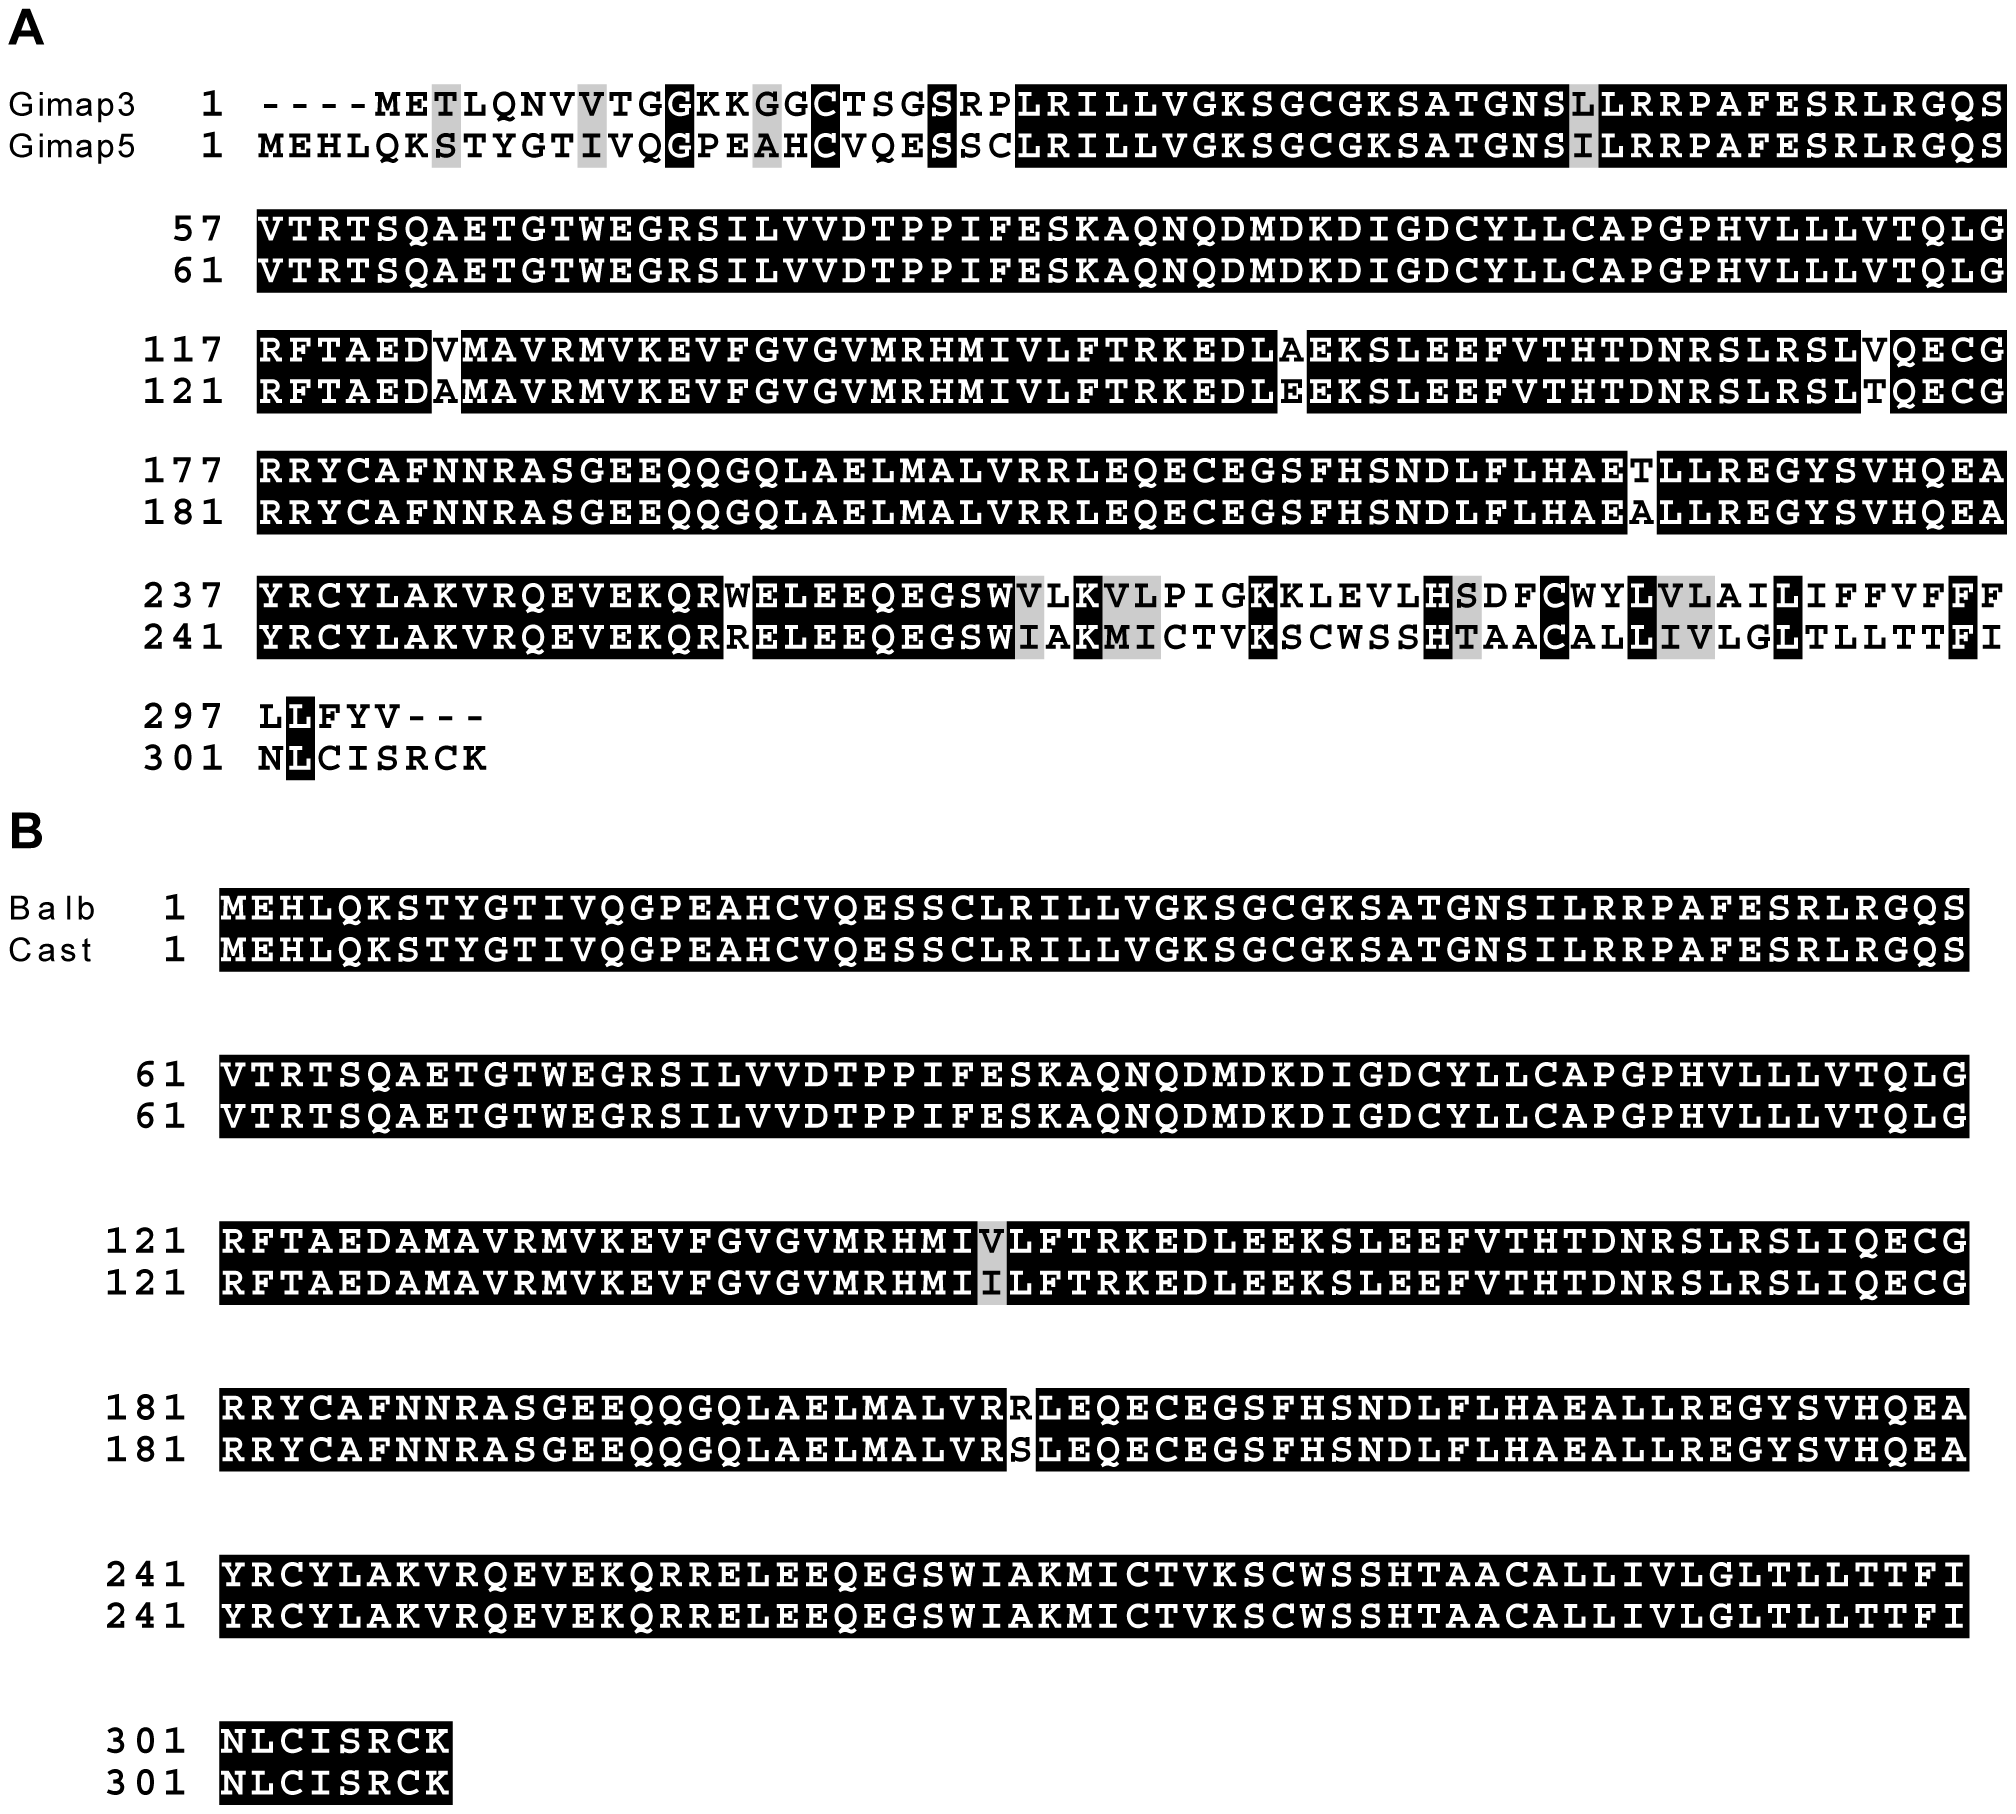 Gimap3 and Gimap5 protein sequences.